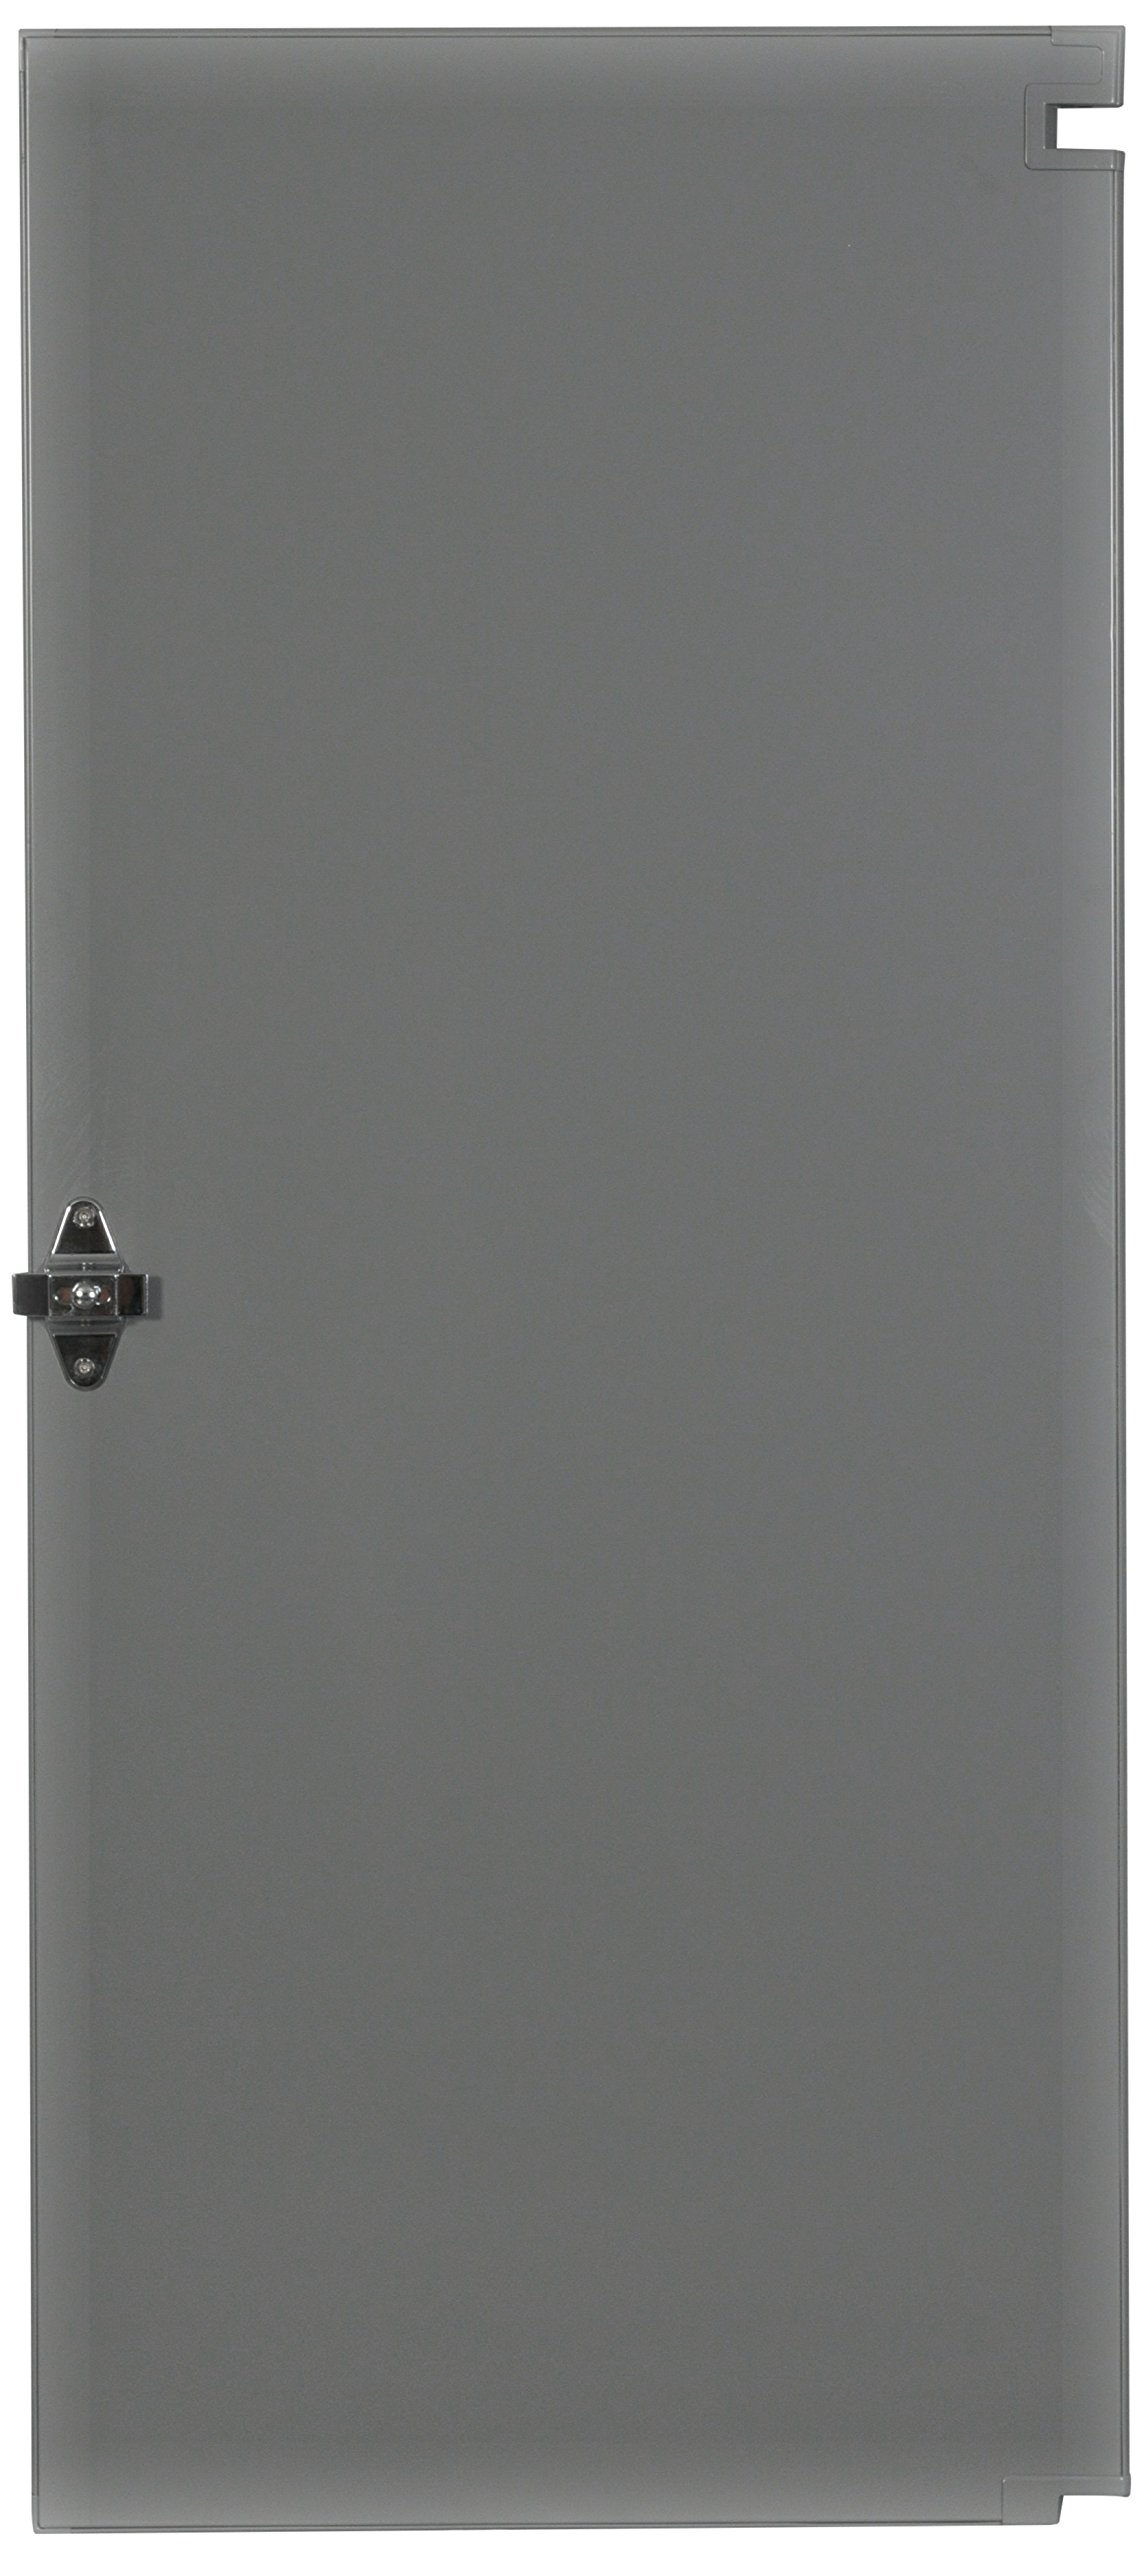 Sanymetal 1226SLOUTSG Outswing Door, 25 5/8'', Sany Grey